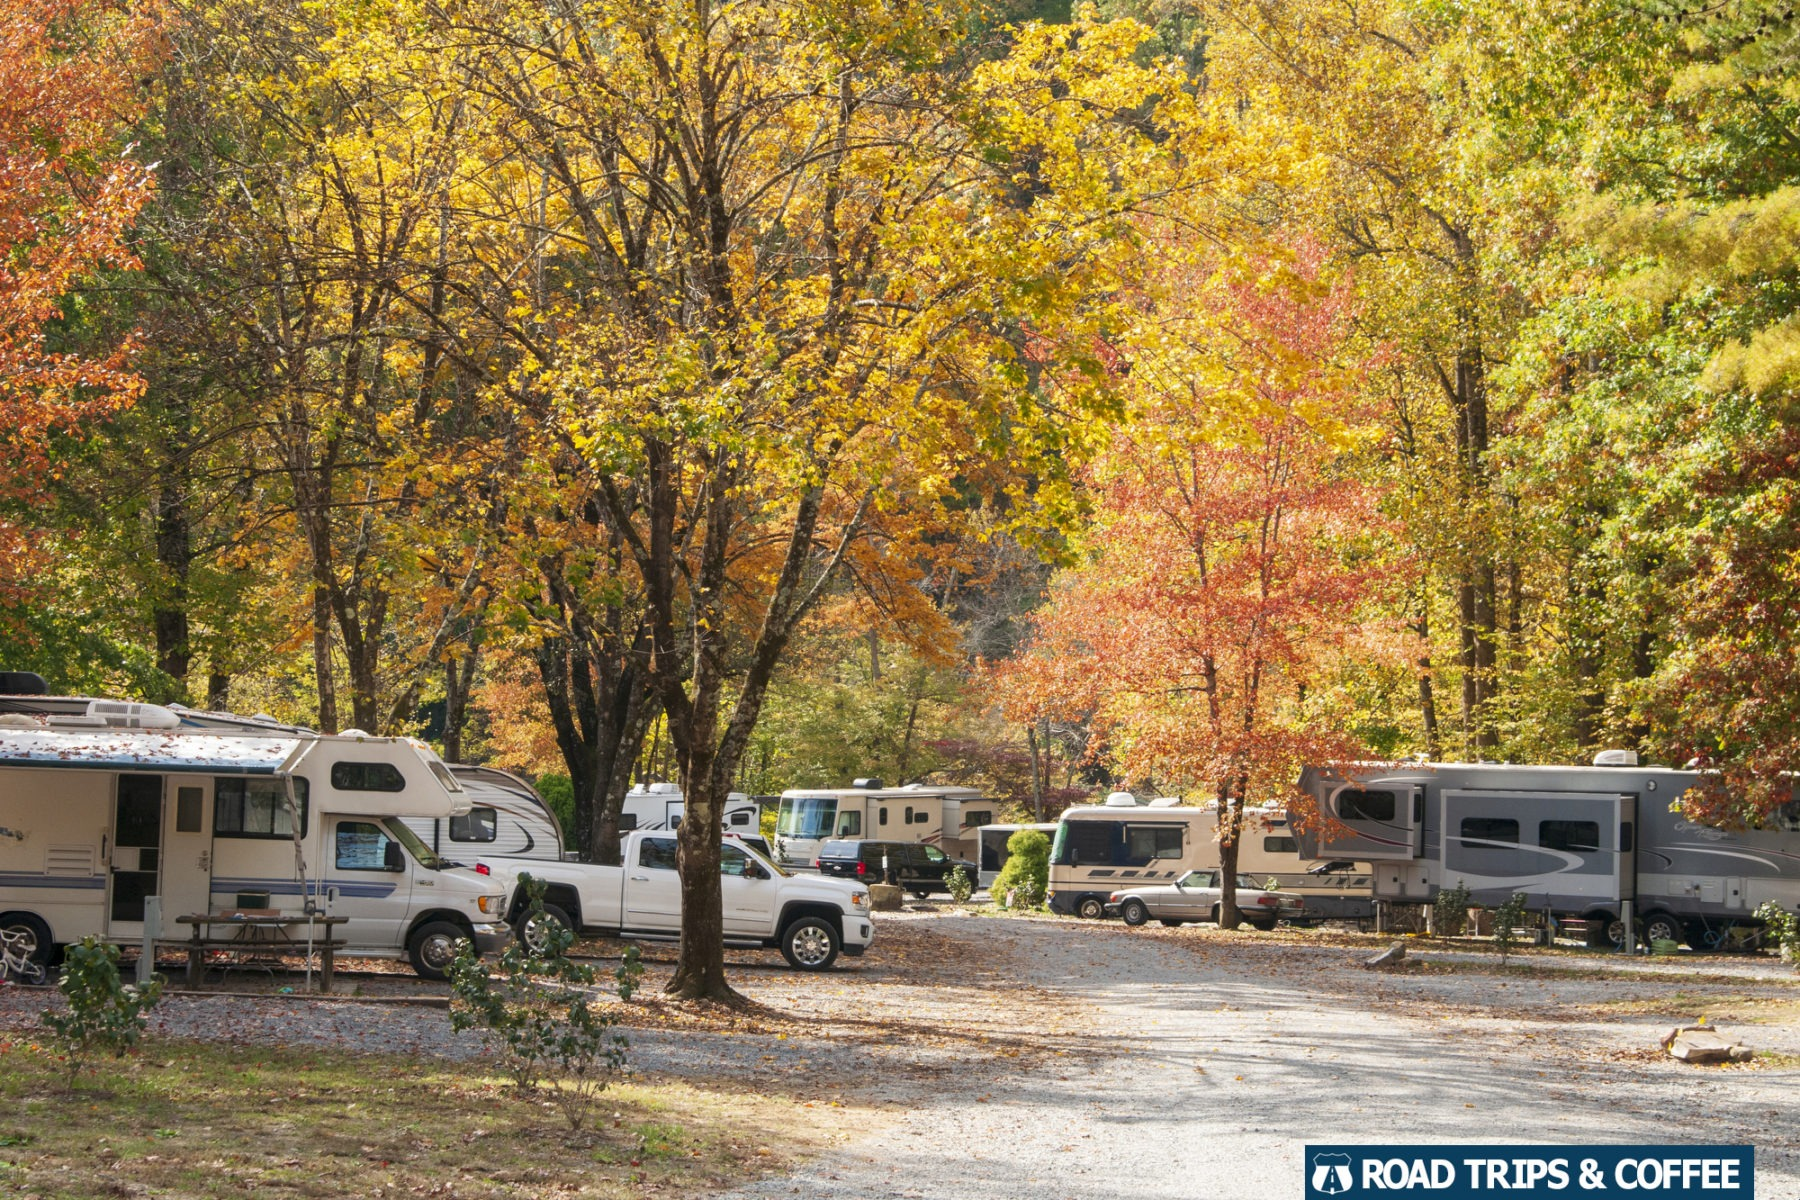 A full campground of campers and RVs surrounded by gorgeous fall colors in massive trees at the Little Arrow Outdoor Resort in Townsend, Tennessee